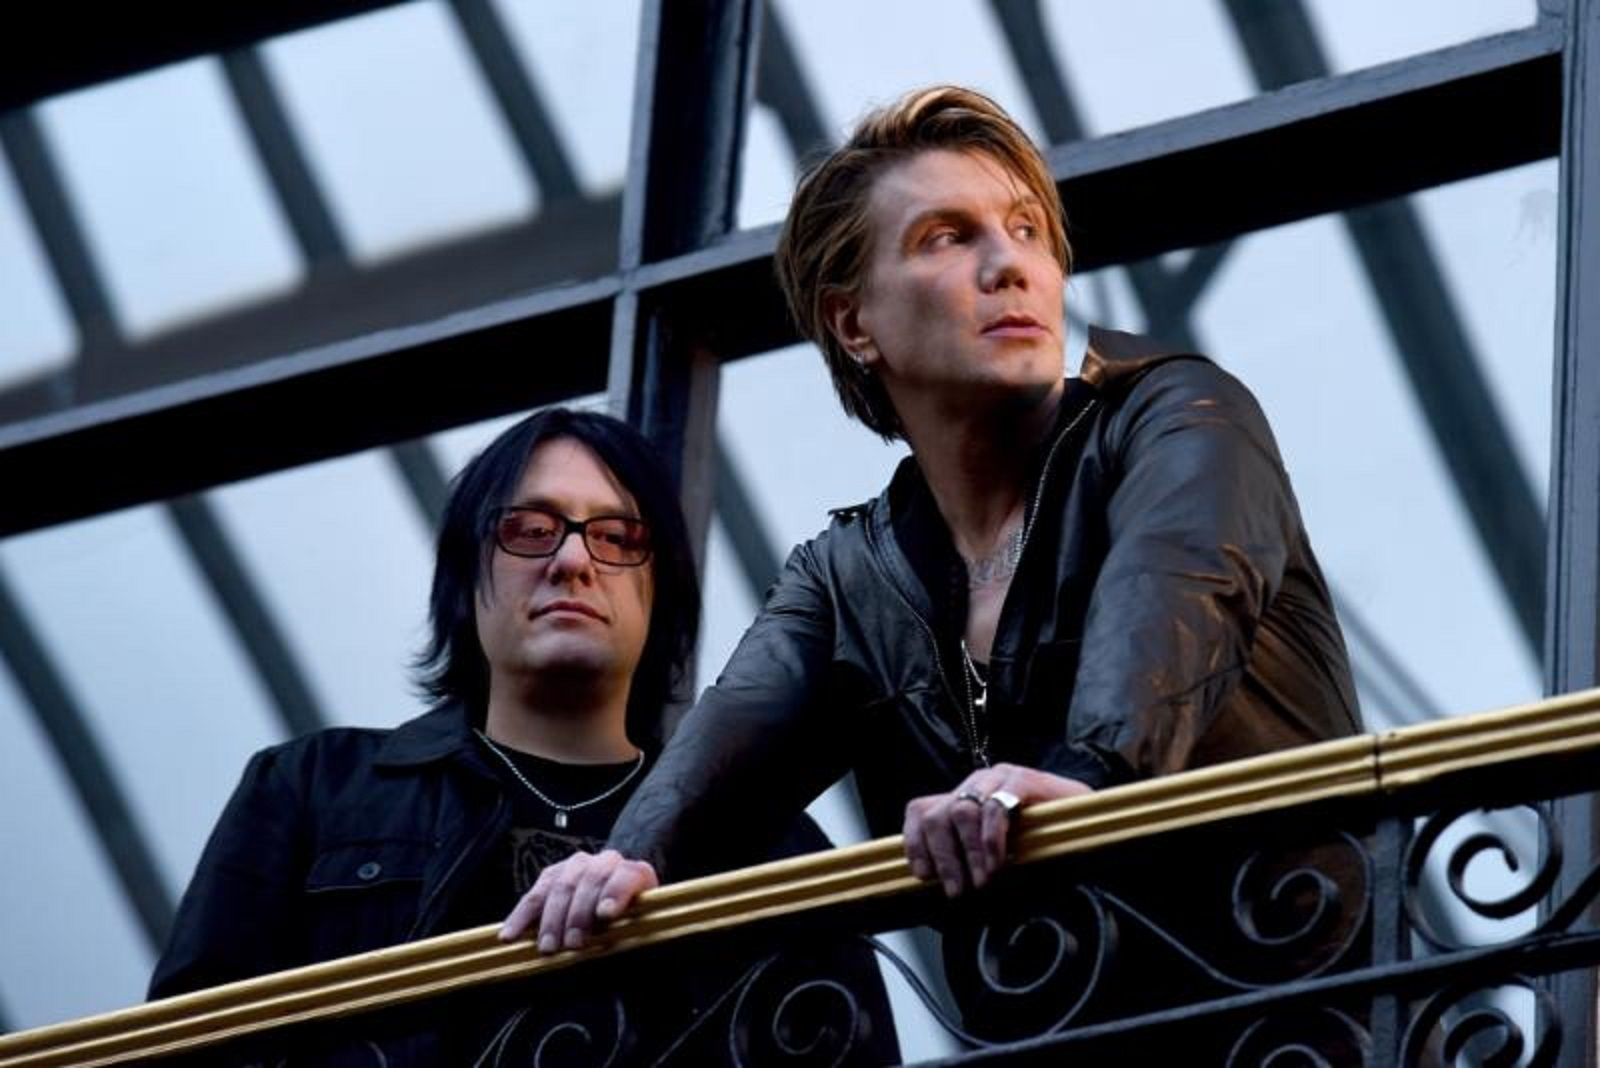 Darien Lake season pass holders will have access to a limited amount of free lawn seats for the Goo Goo Dolls August performance.